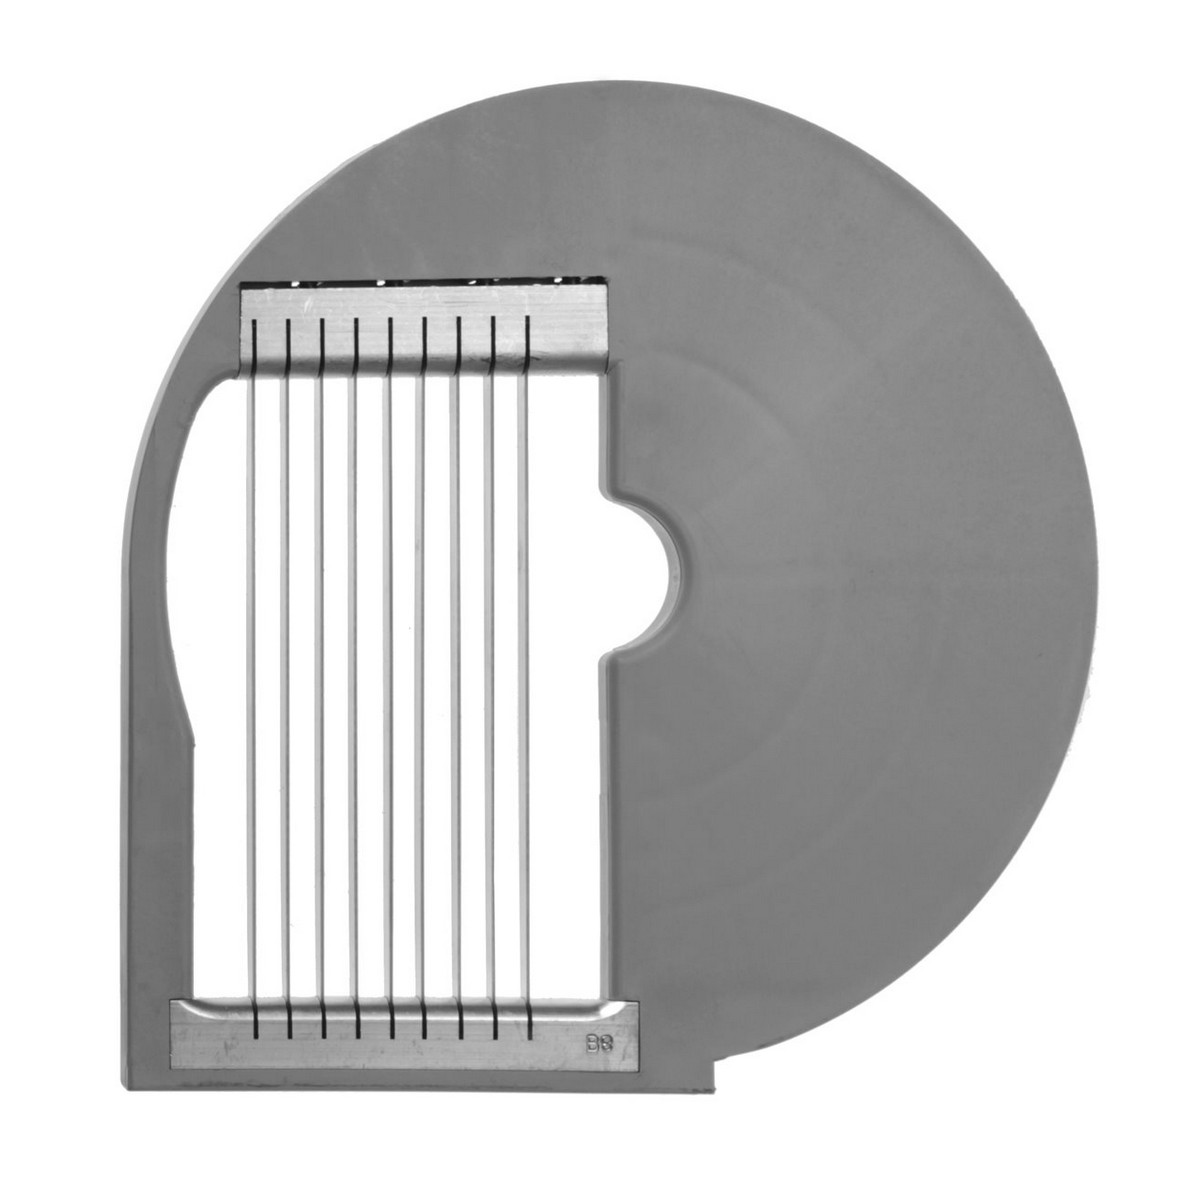 B8 Series AK Disc - For All CHEF 300-400 Models